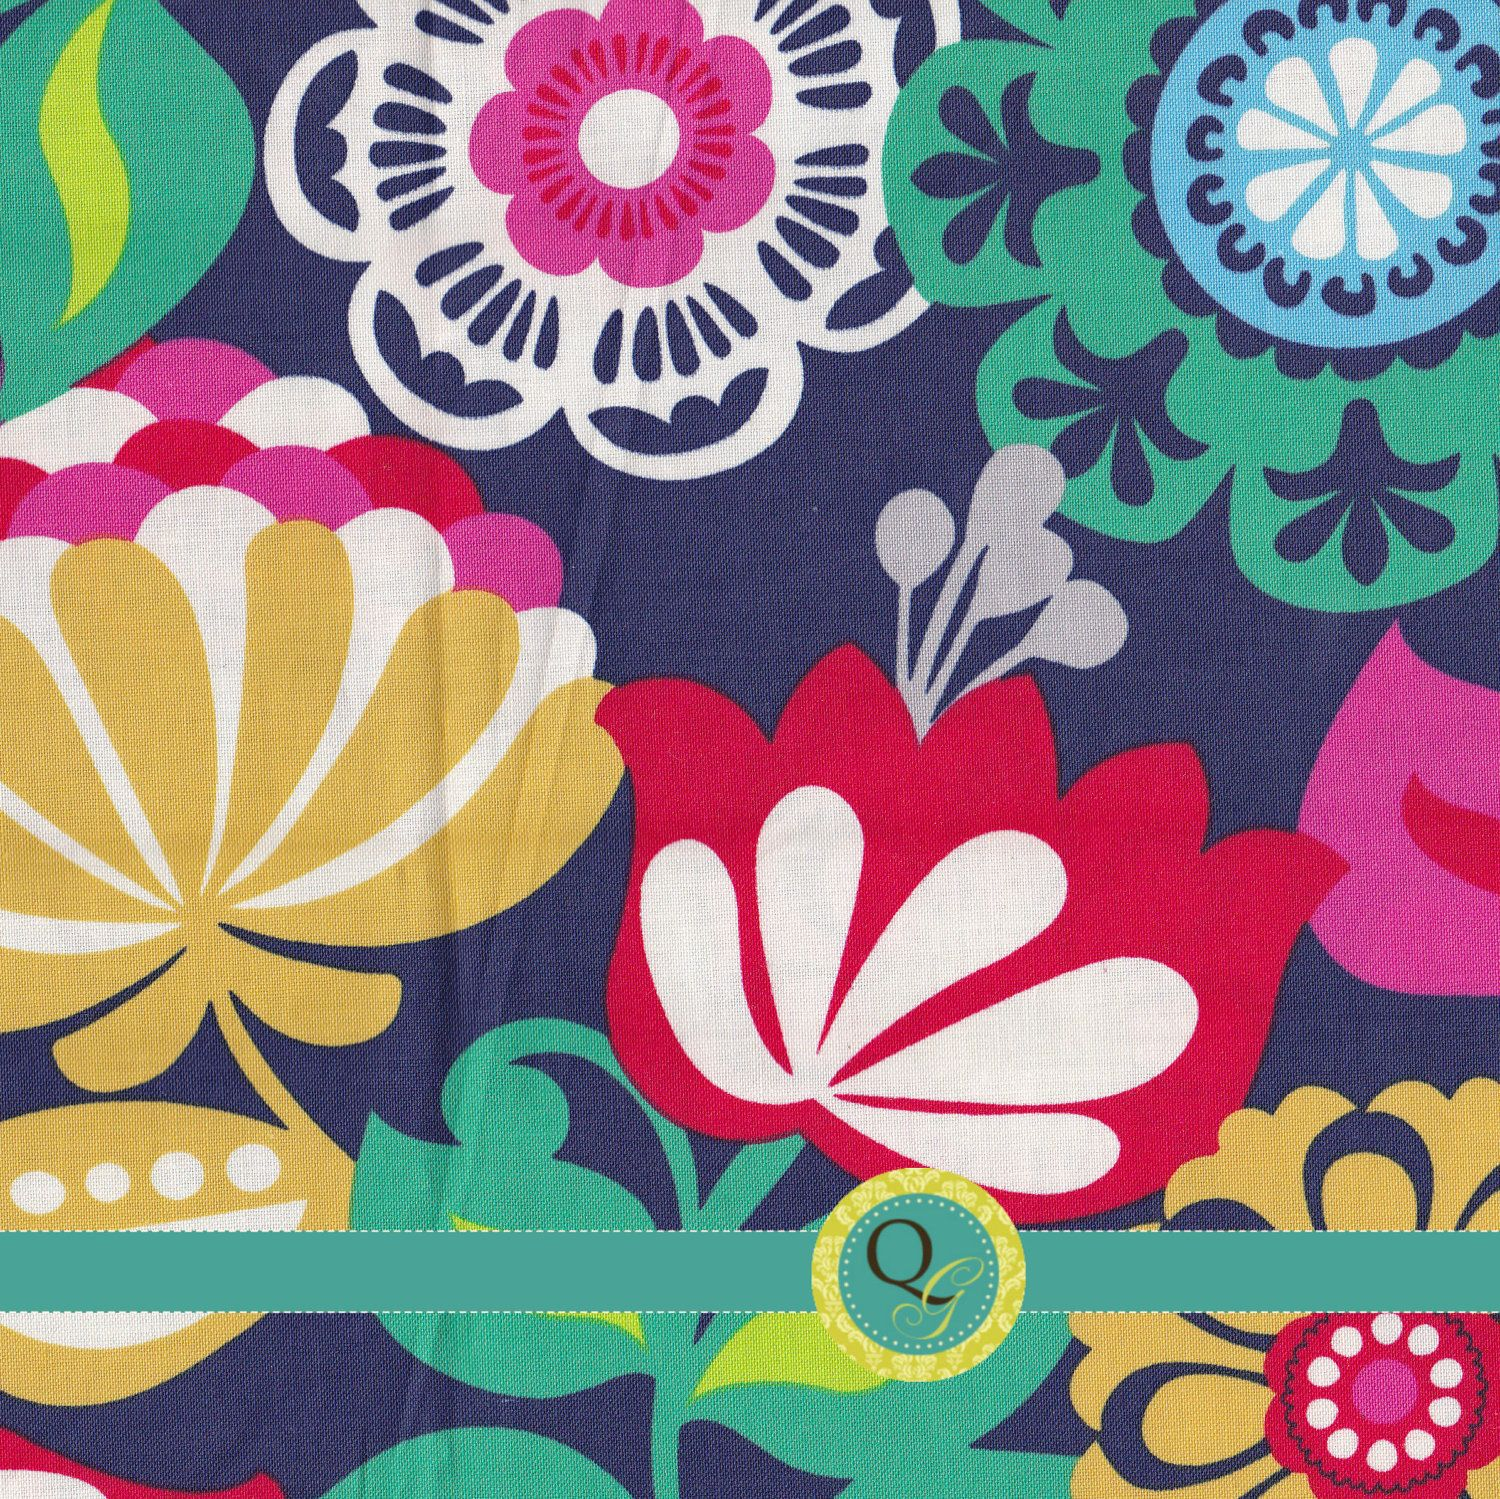 Designer Fabric By The Yard Teal Navy Blue Red Pink Large Floral